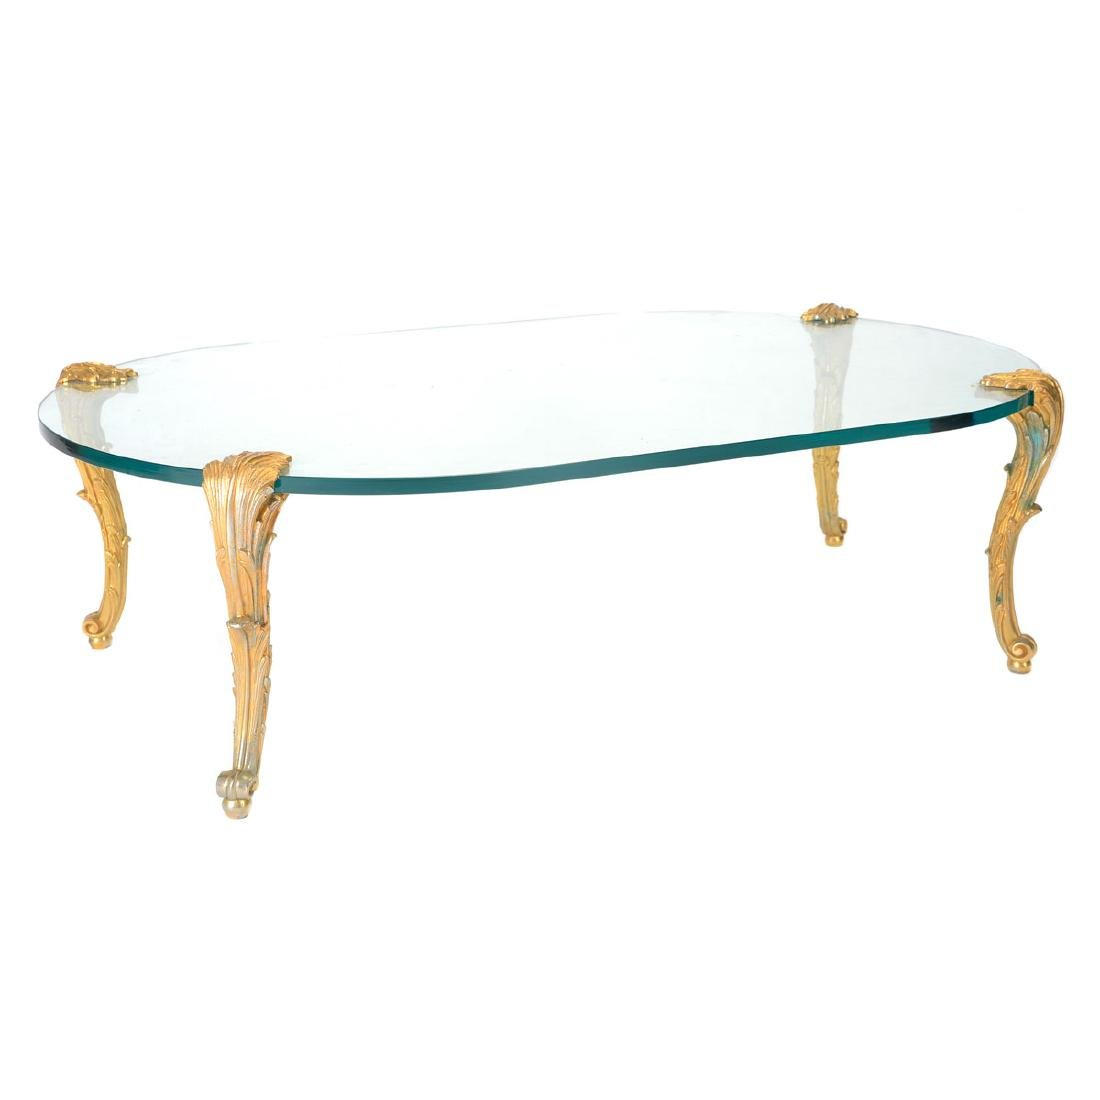 P. E. Guerin Gilt Bronze and Glass Oval Low Table